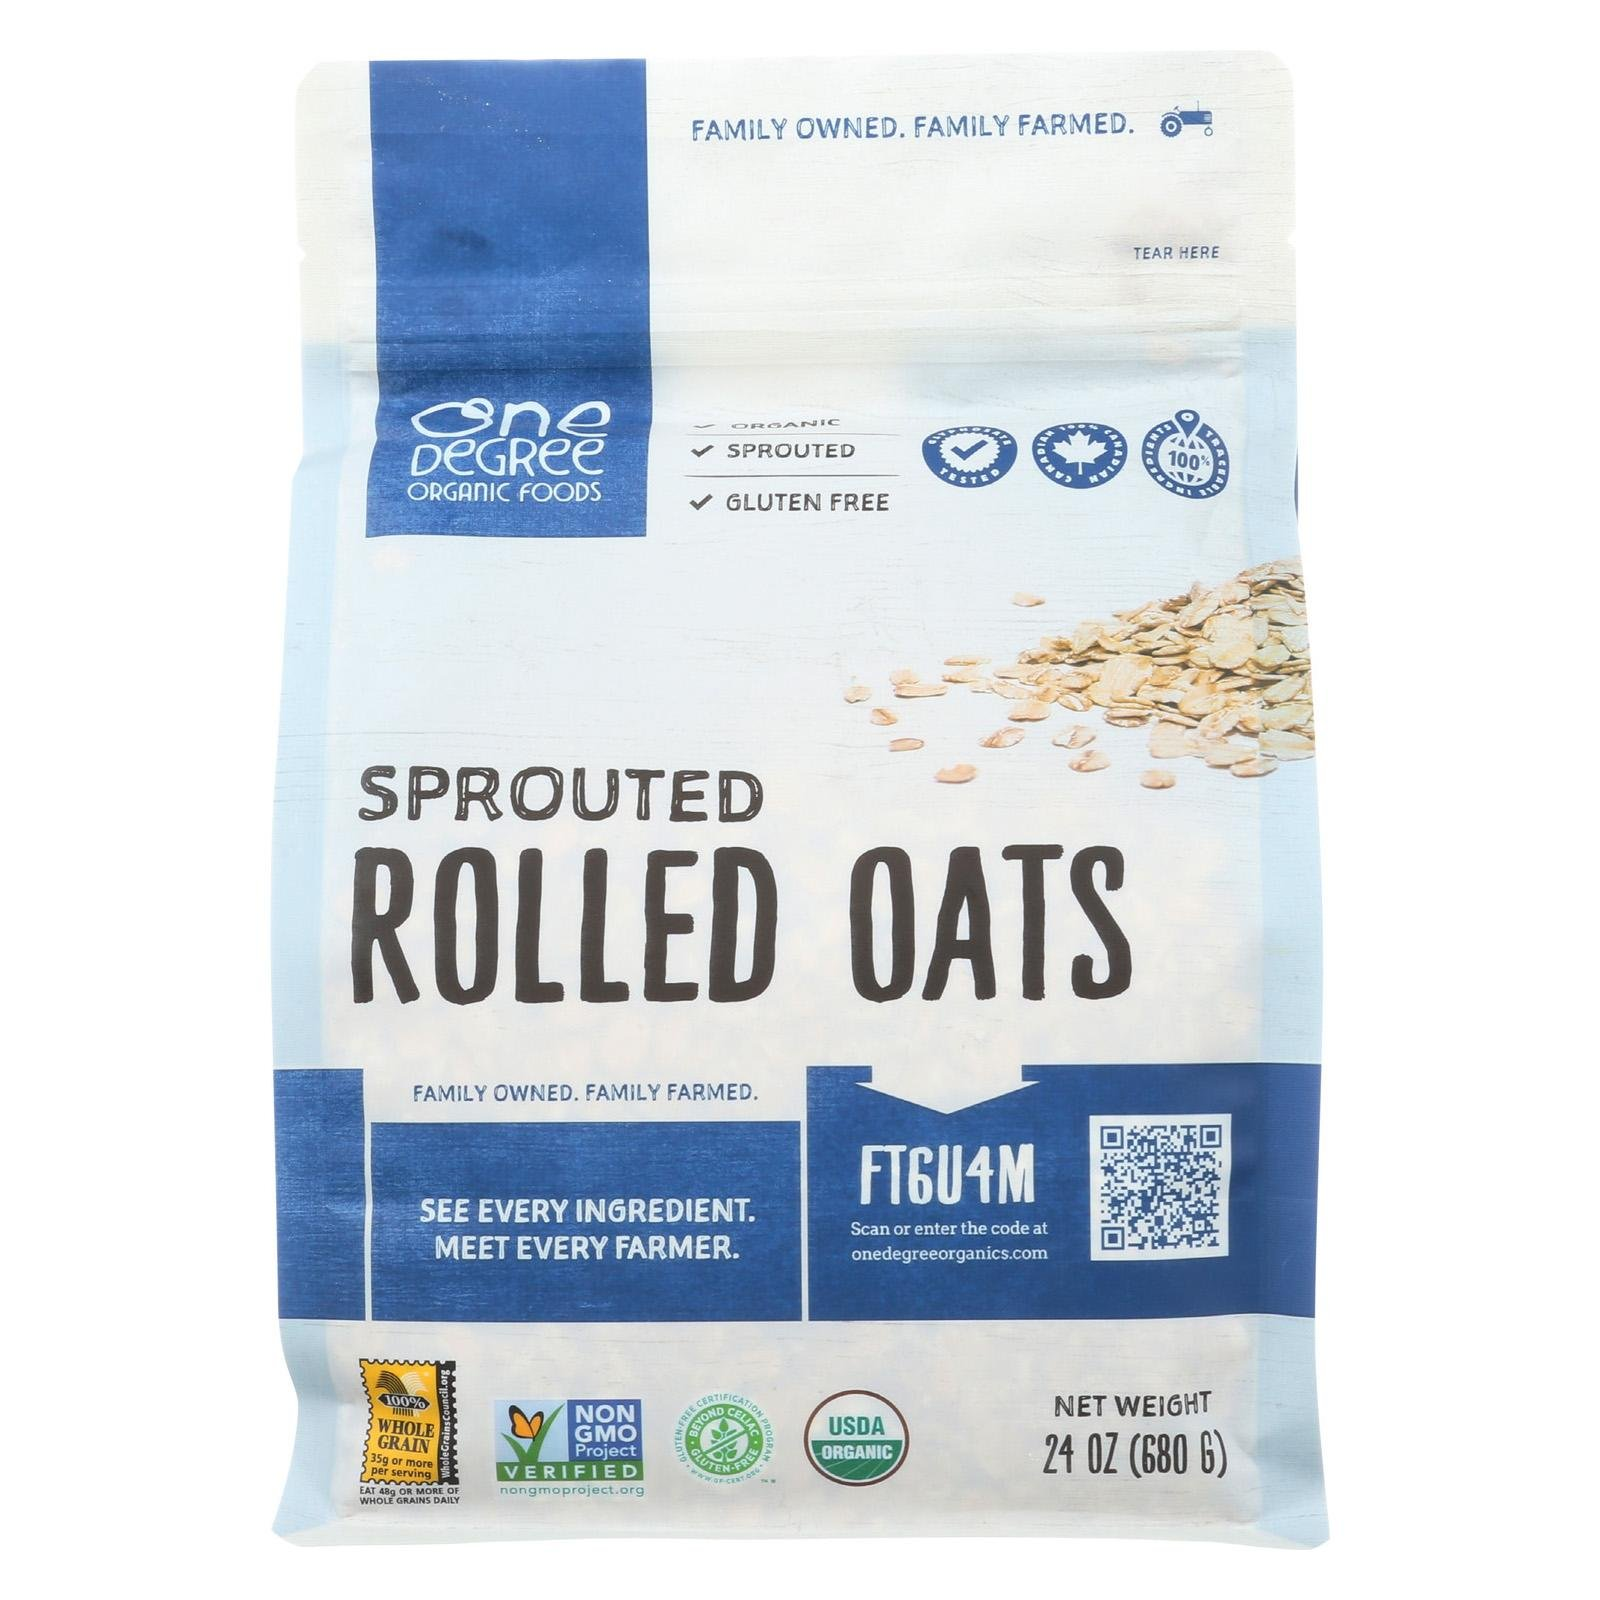 ONE DEGREE ORGANIC FOODS, Sptrd Oats, Og2, Rolled, Pack of 4, Size 24 OZ, (Gluten Free Vegan 95%+ Organic)